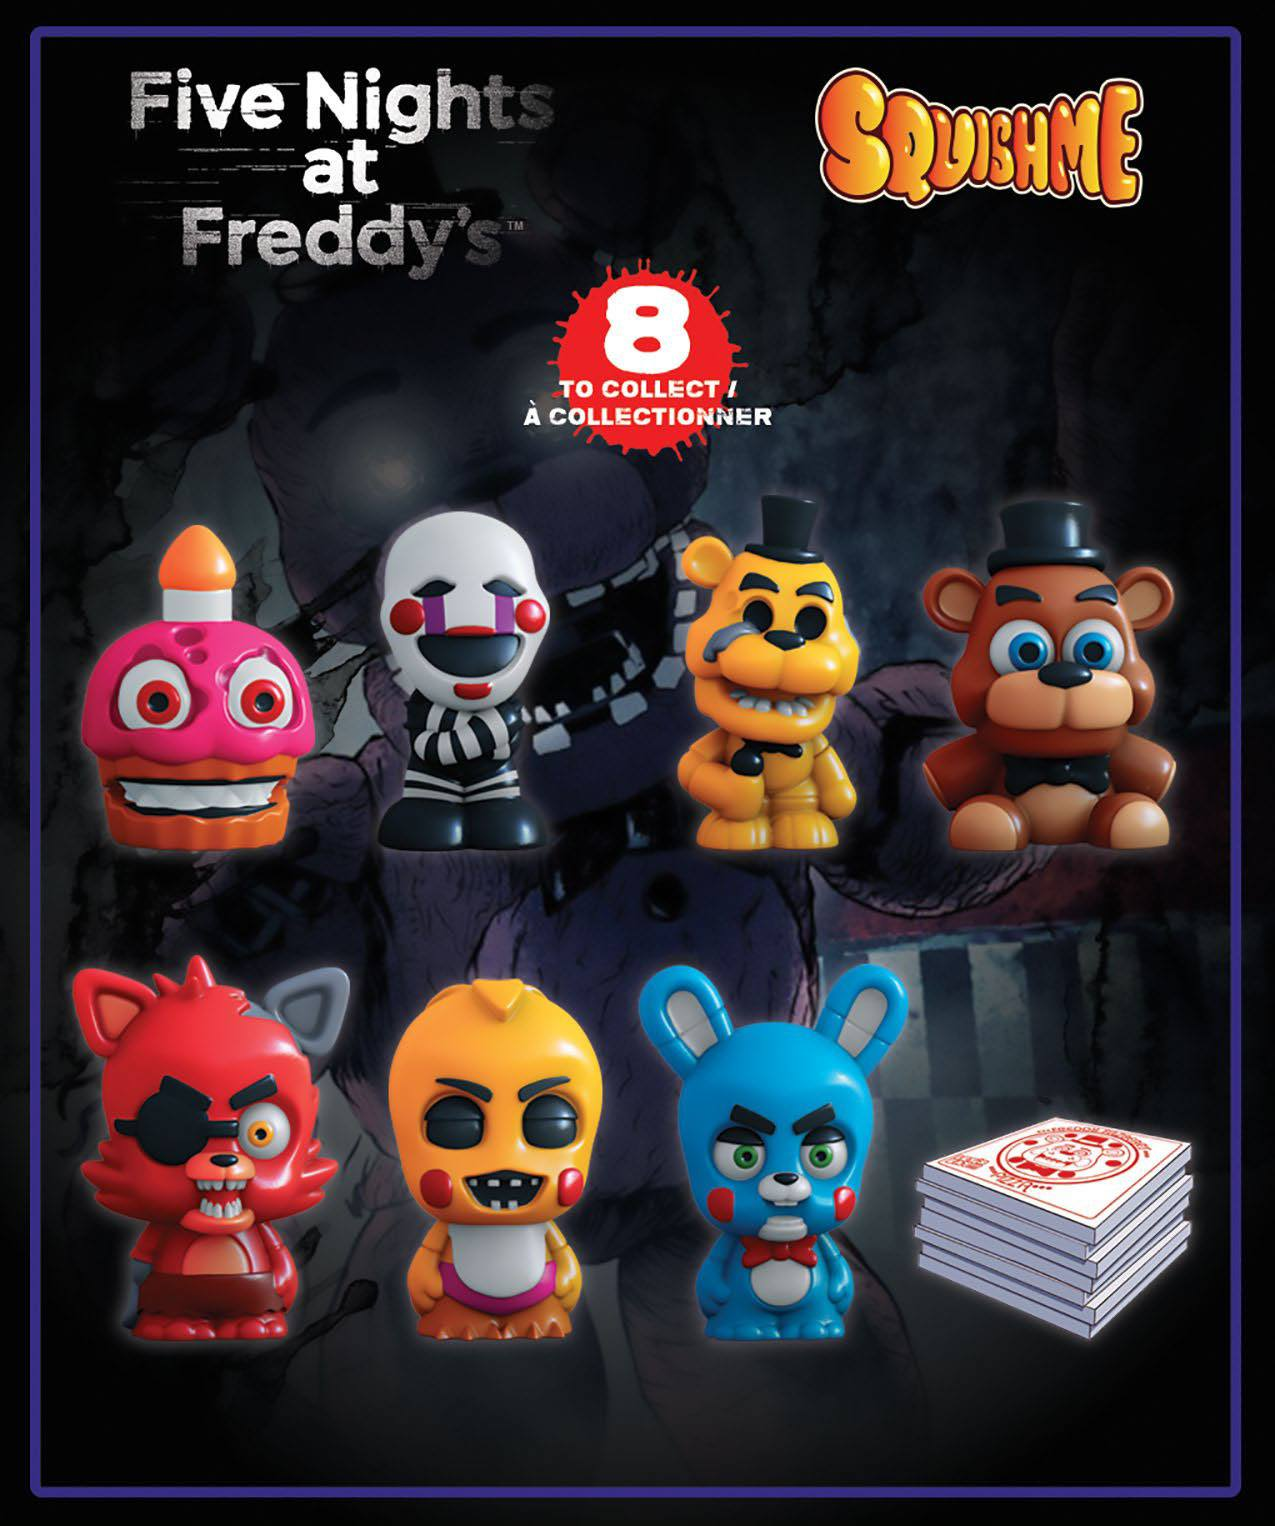 Five Nights at Freddy's Squishme Anti-Stress Figures 6 cm Display (24)